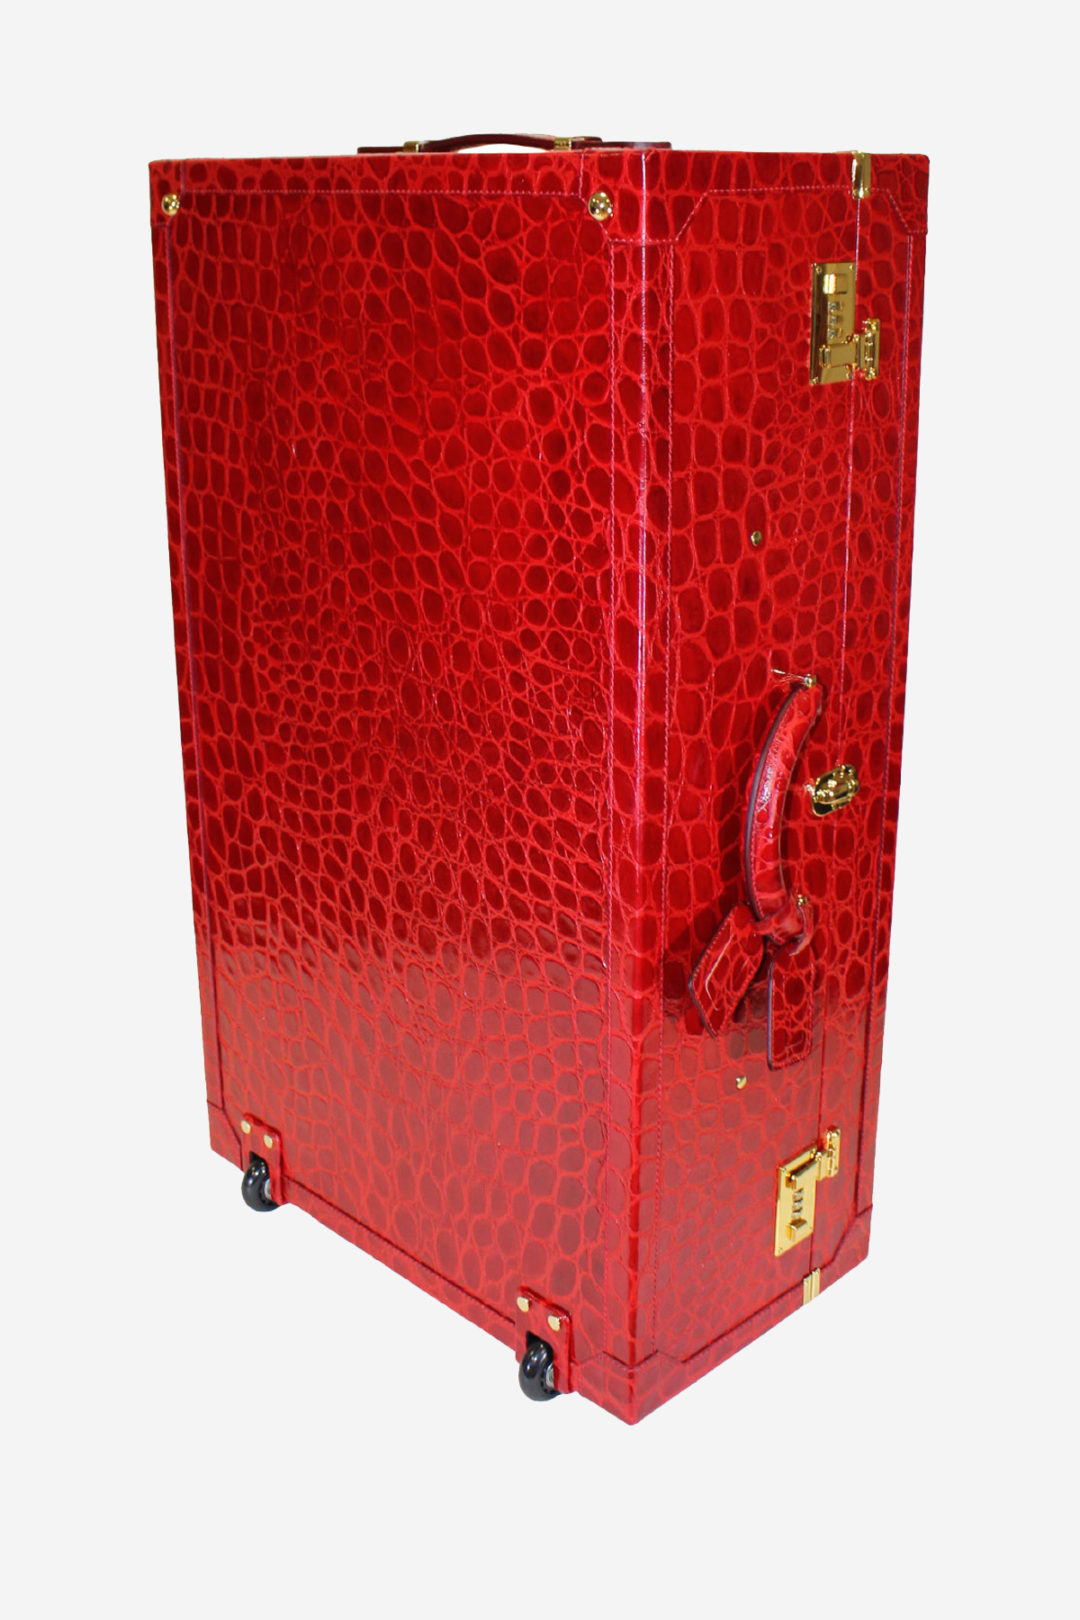 PA036 - Wheely suite case